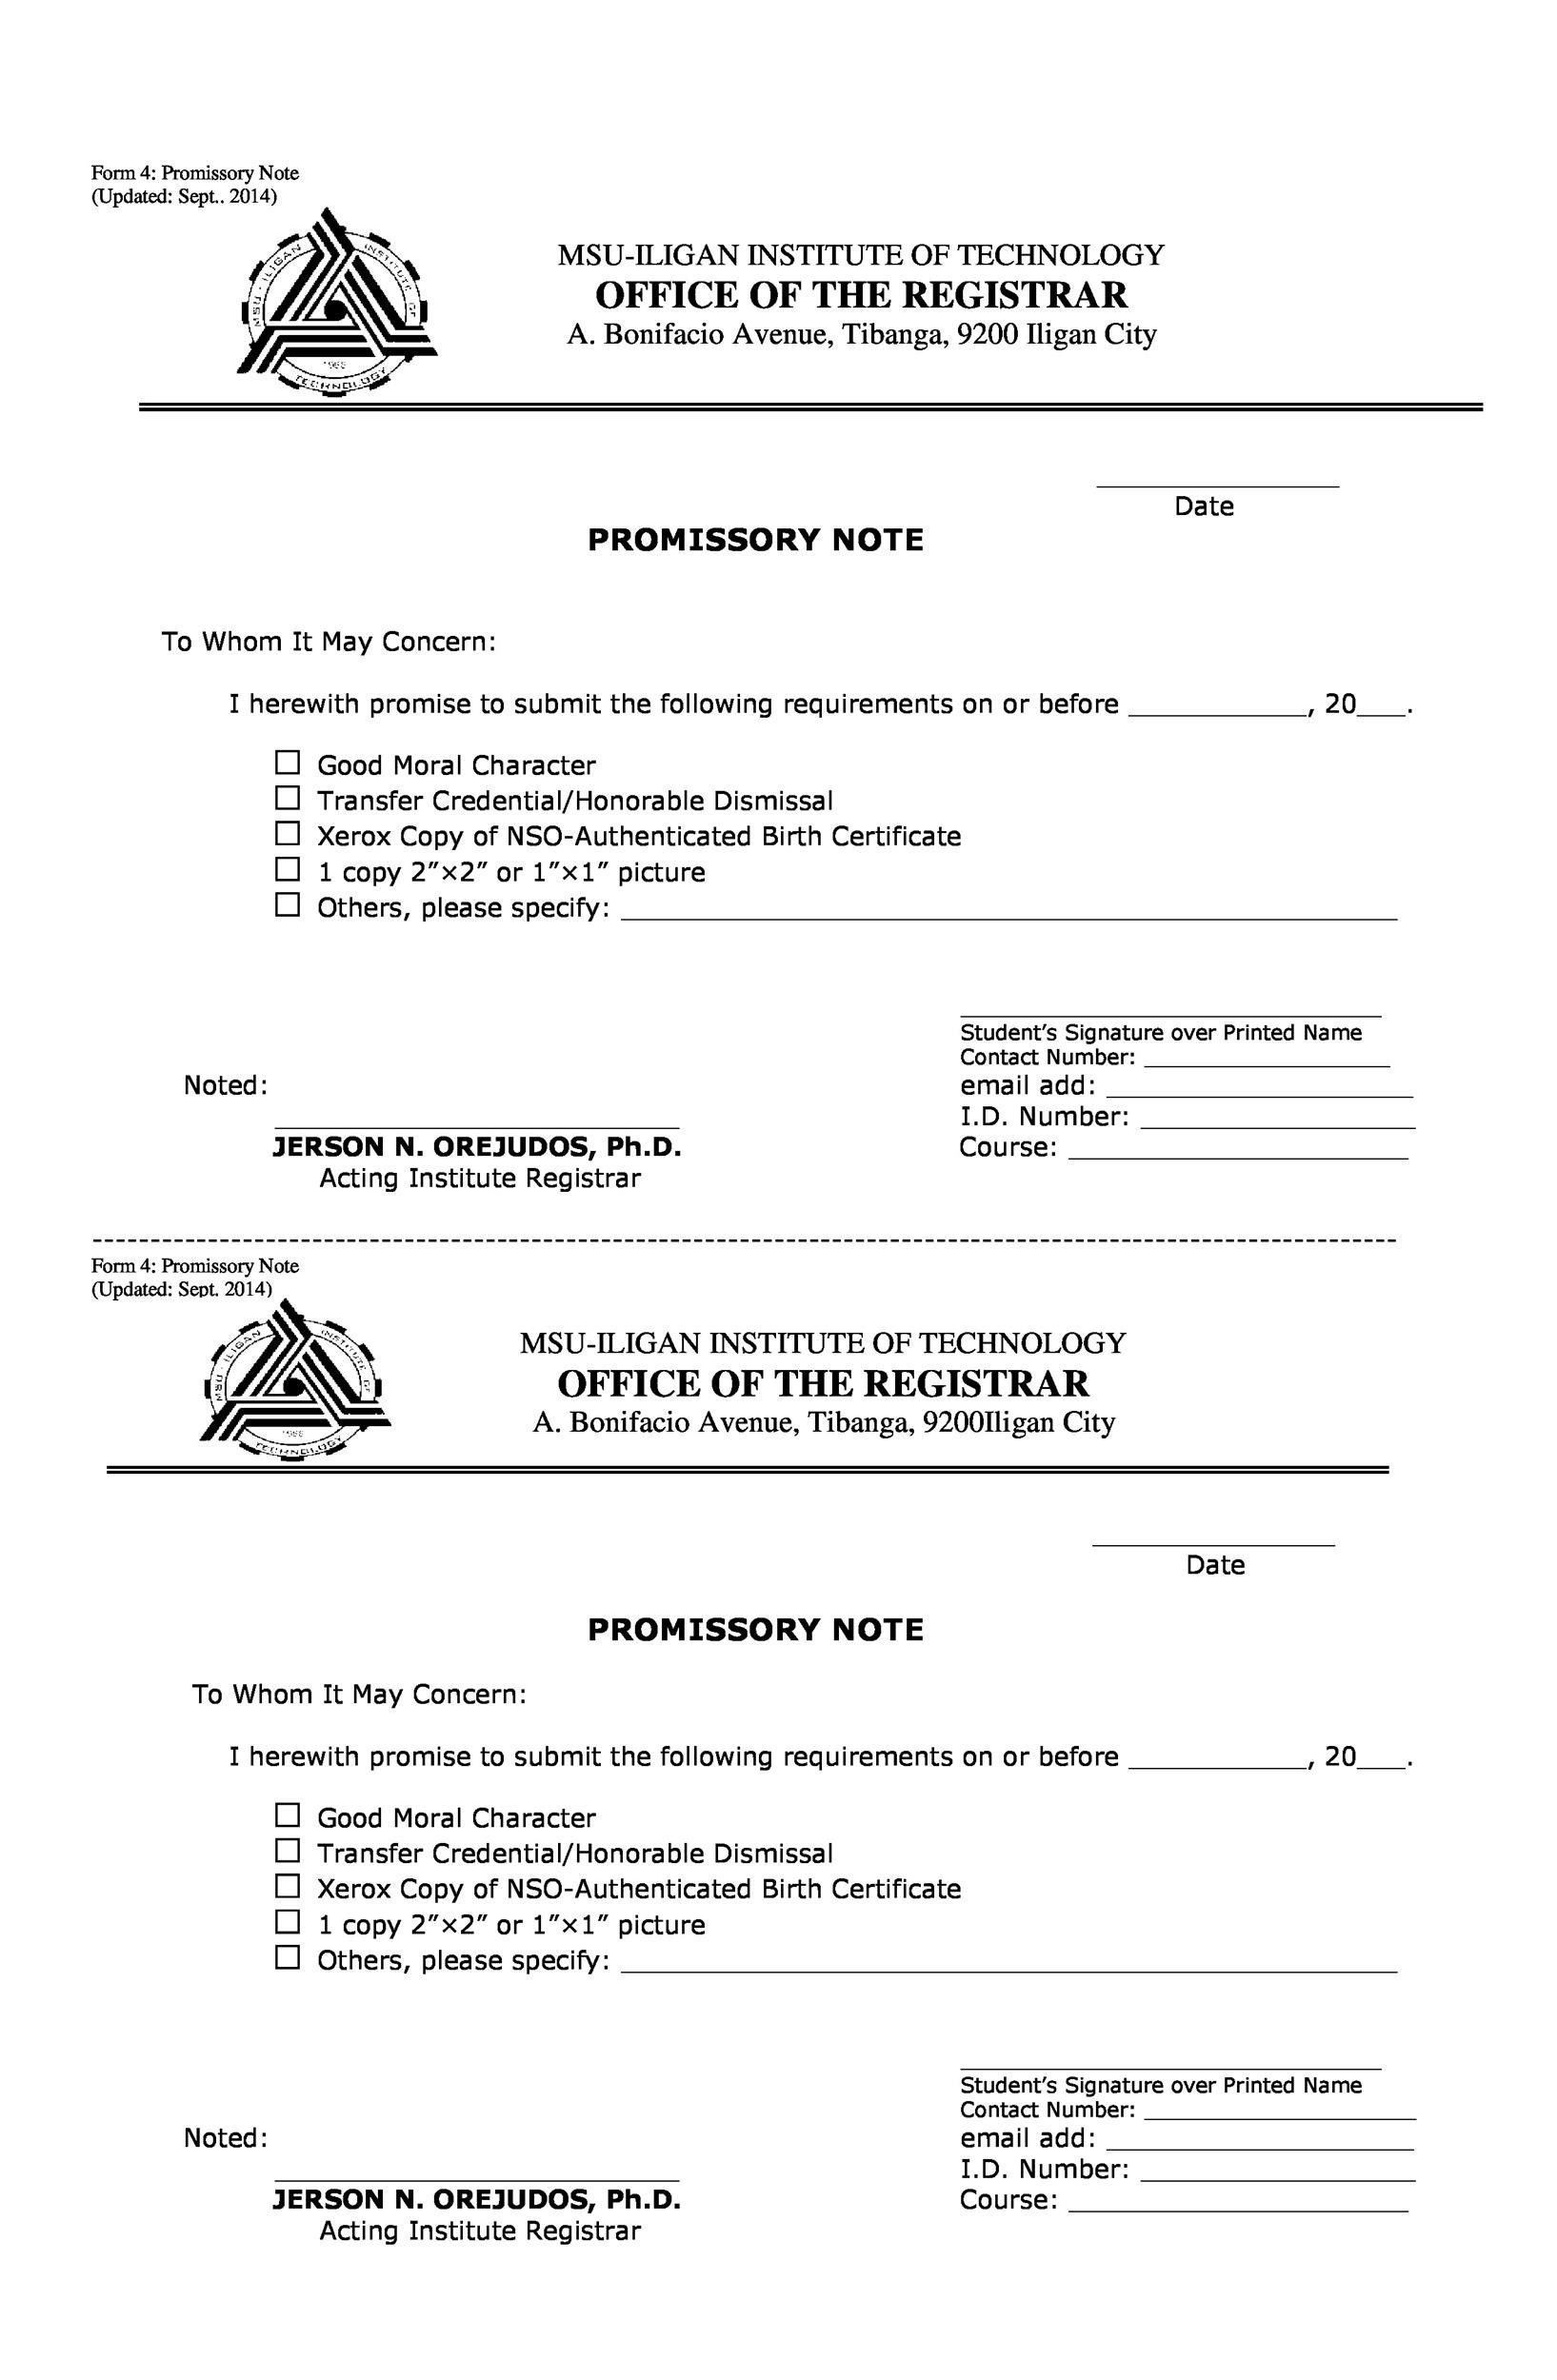 FREE Promissory Note Templates Forms Word PDF Template Lab - Free promissory note template for personal loan